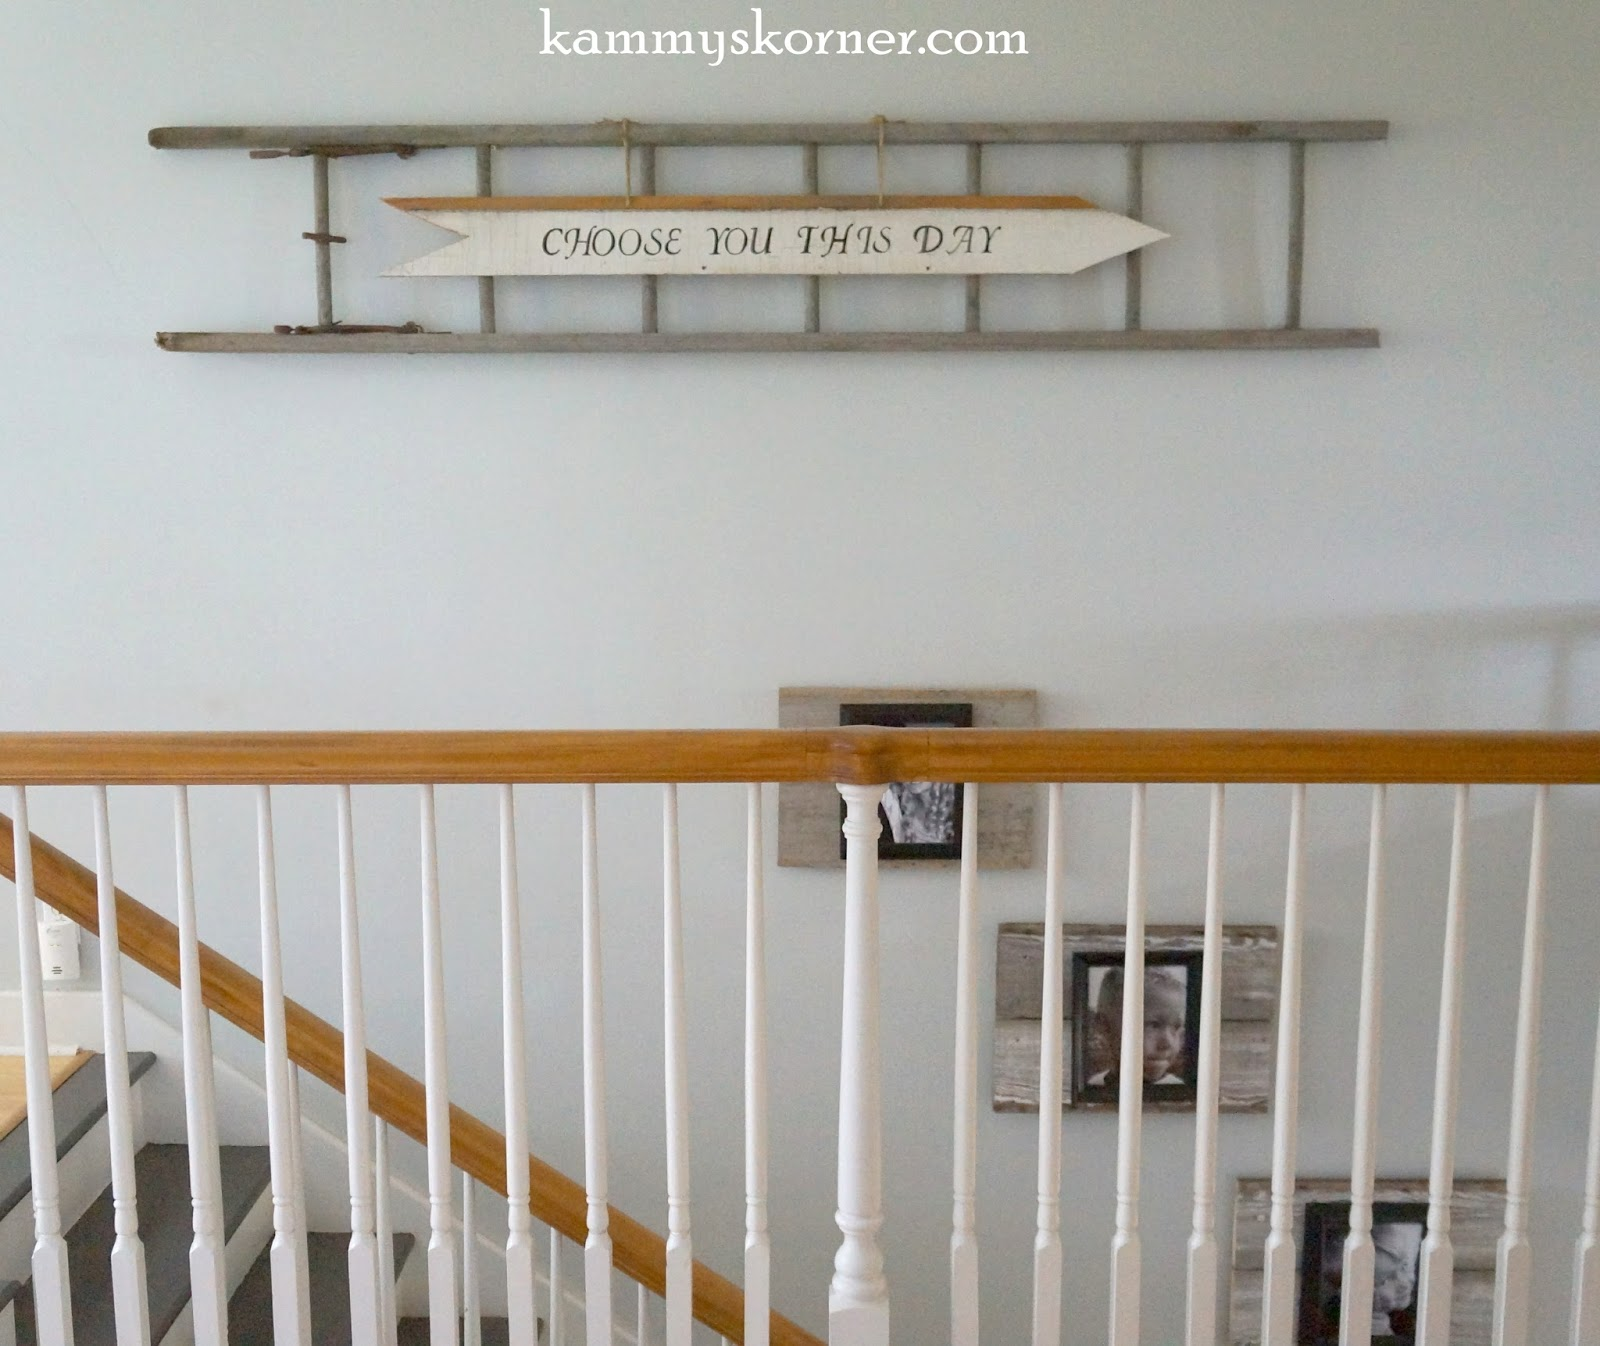 Kammy S Korner Rustic Ladder With Upcycled Arrow Sign